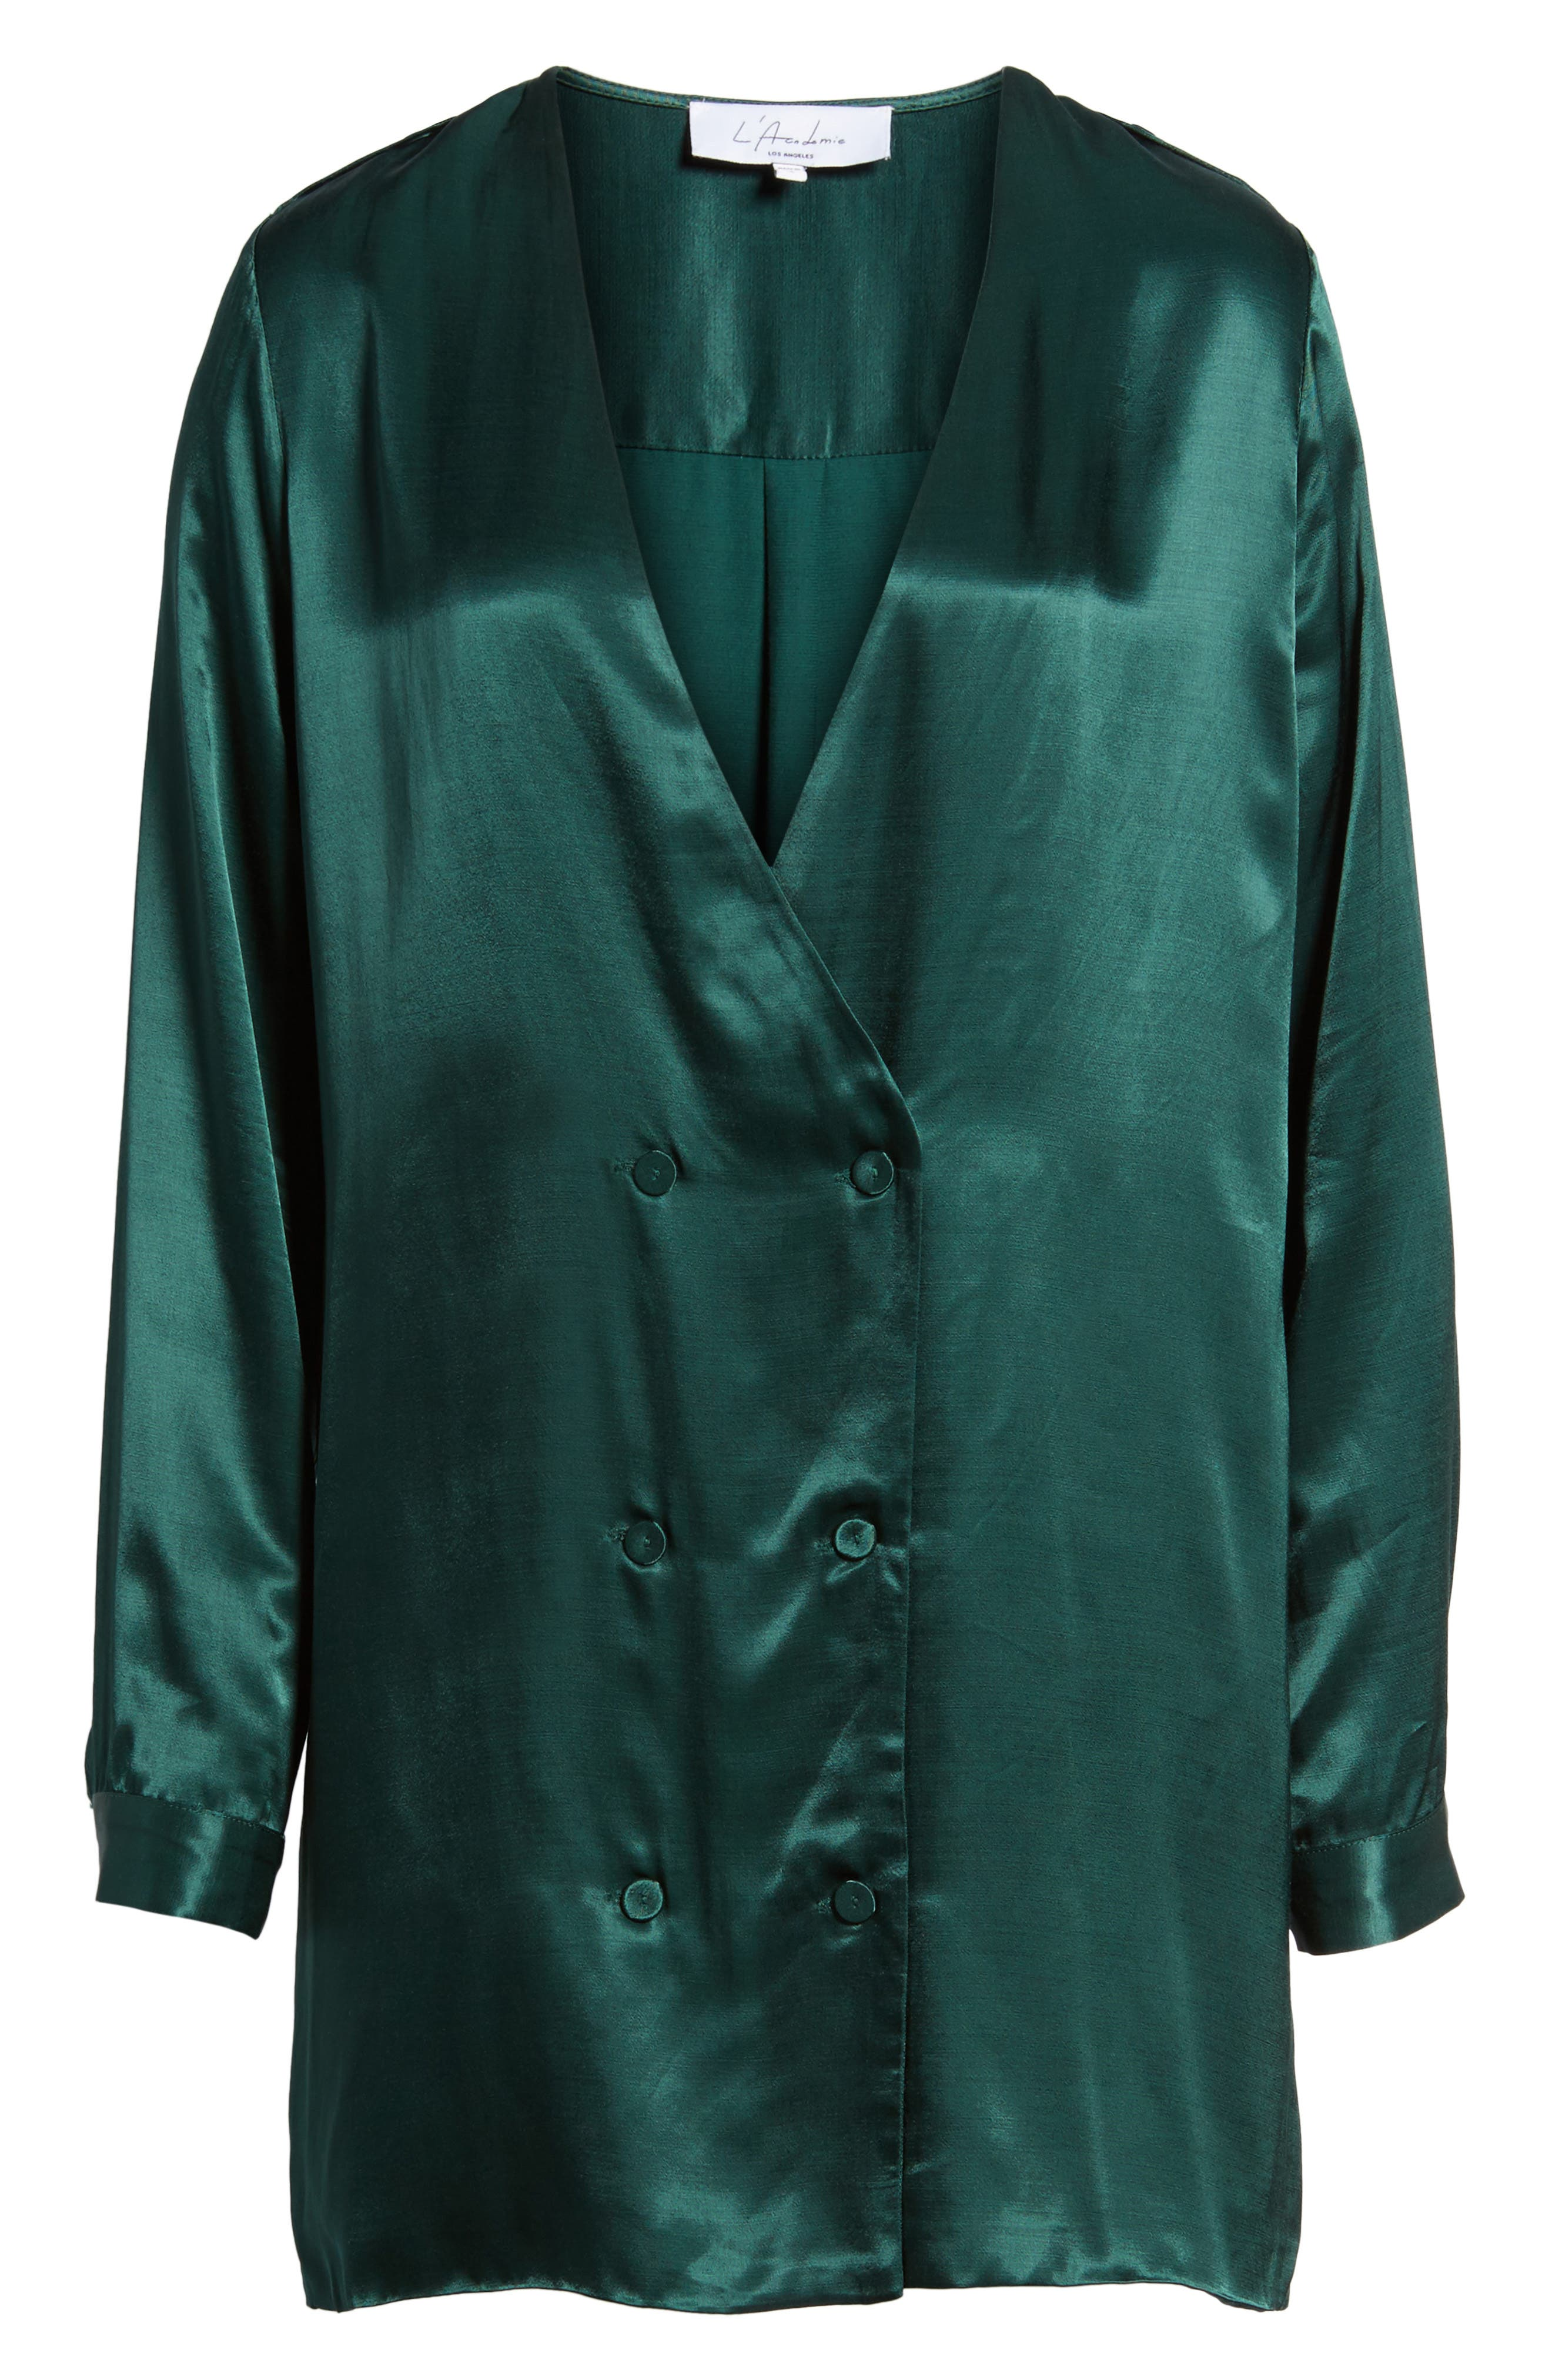 L'Academie The Cadet Shirtdress,                             Alternate thumbnail 6, color,                             Emerald